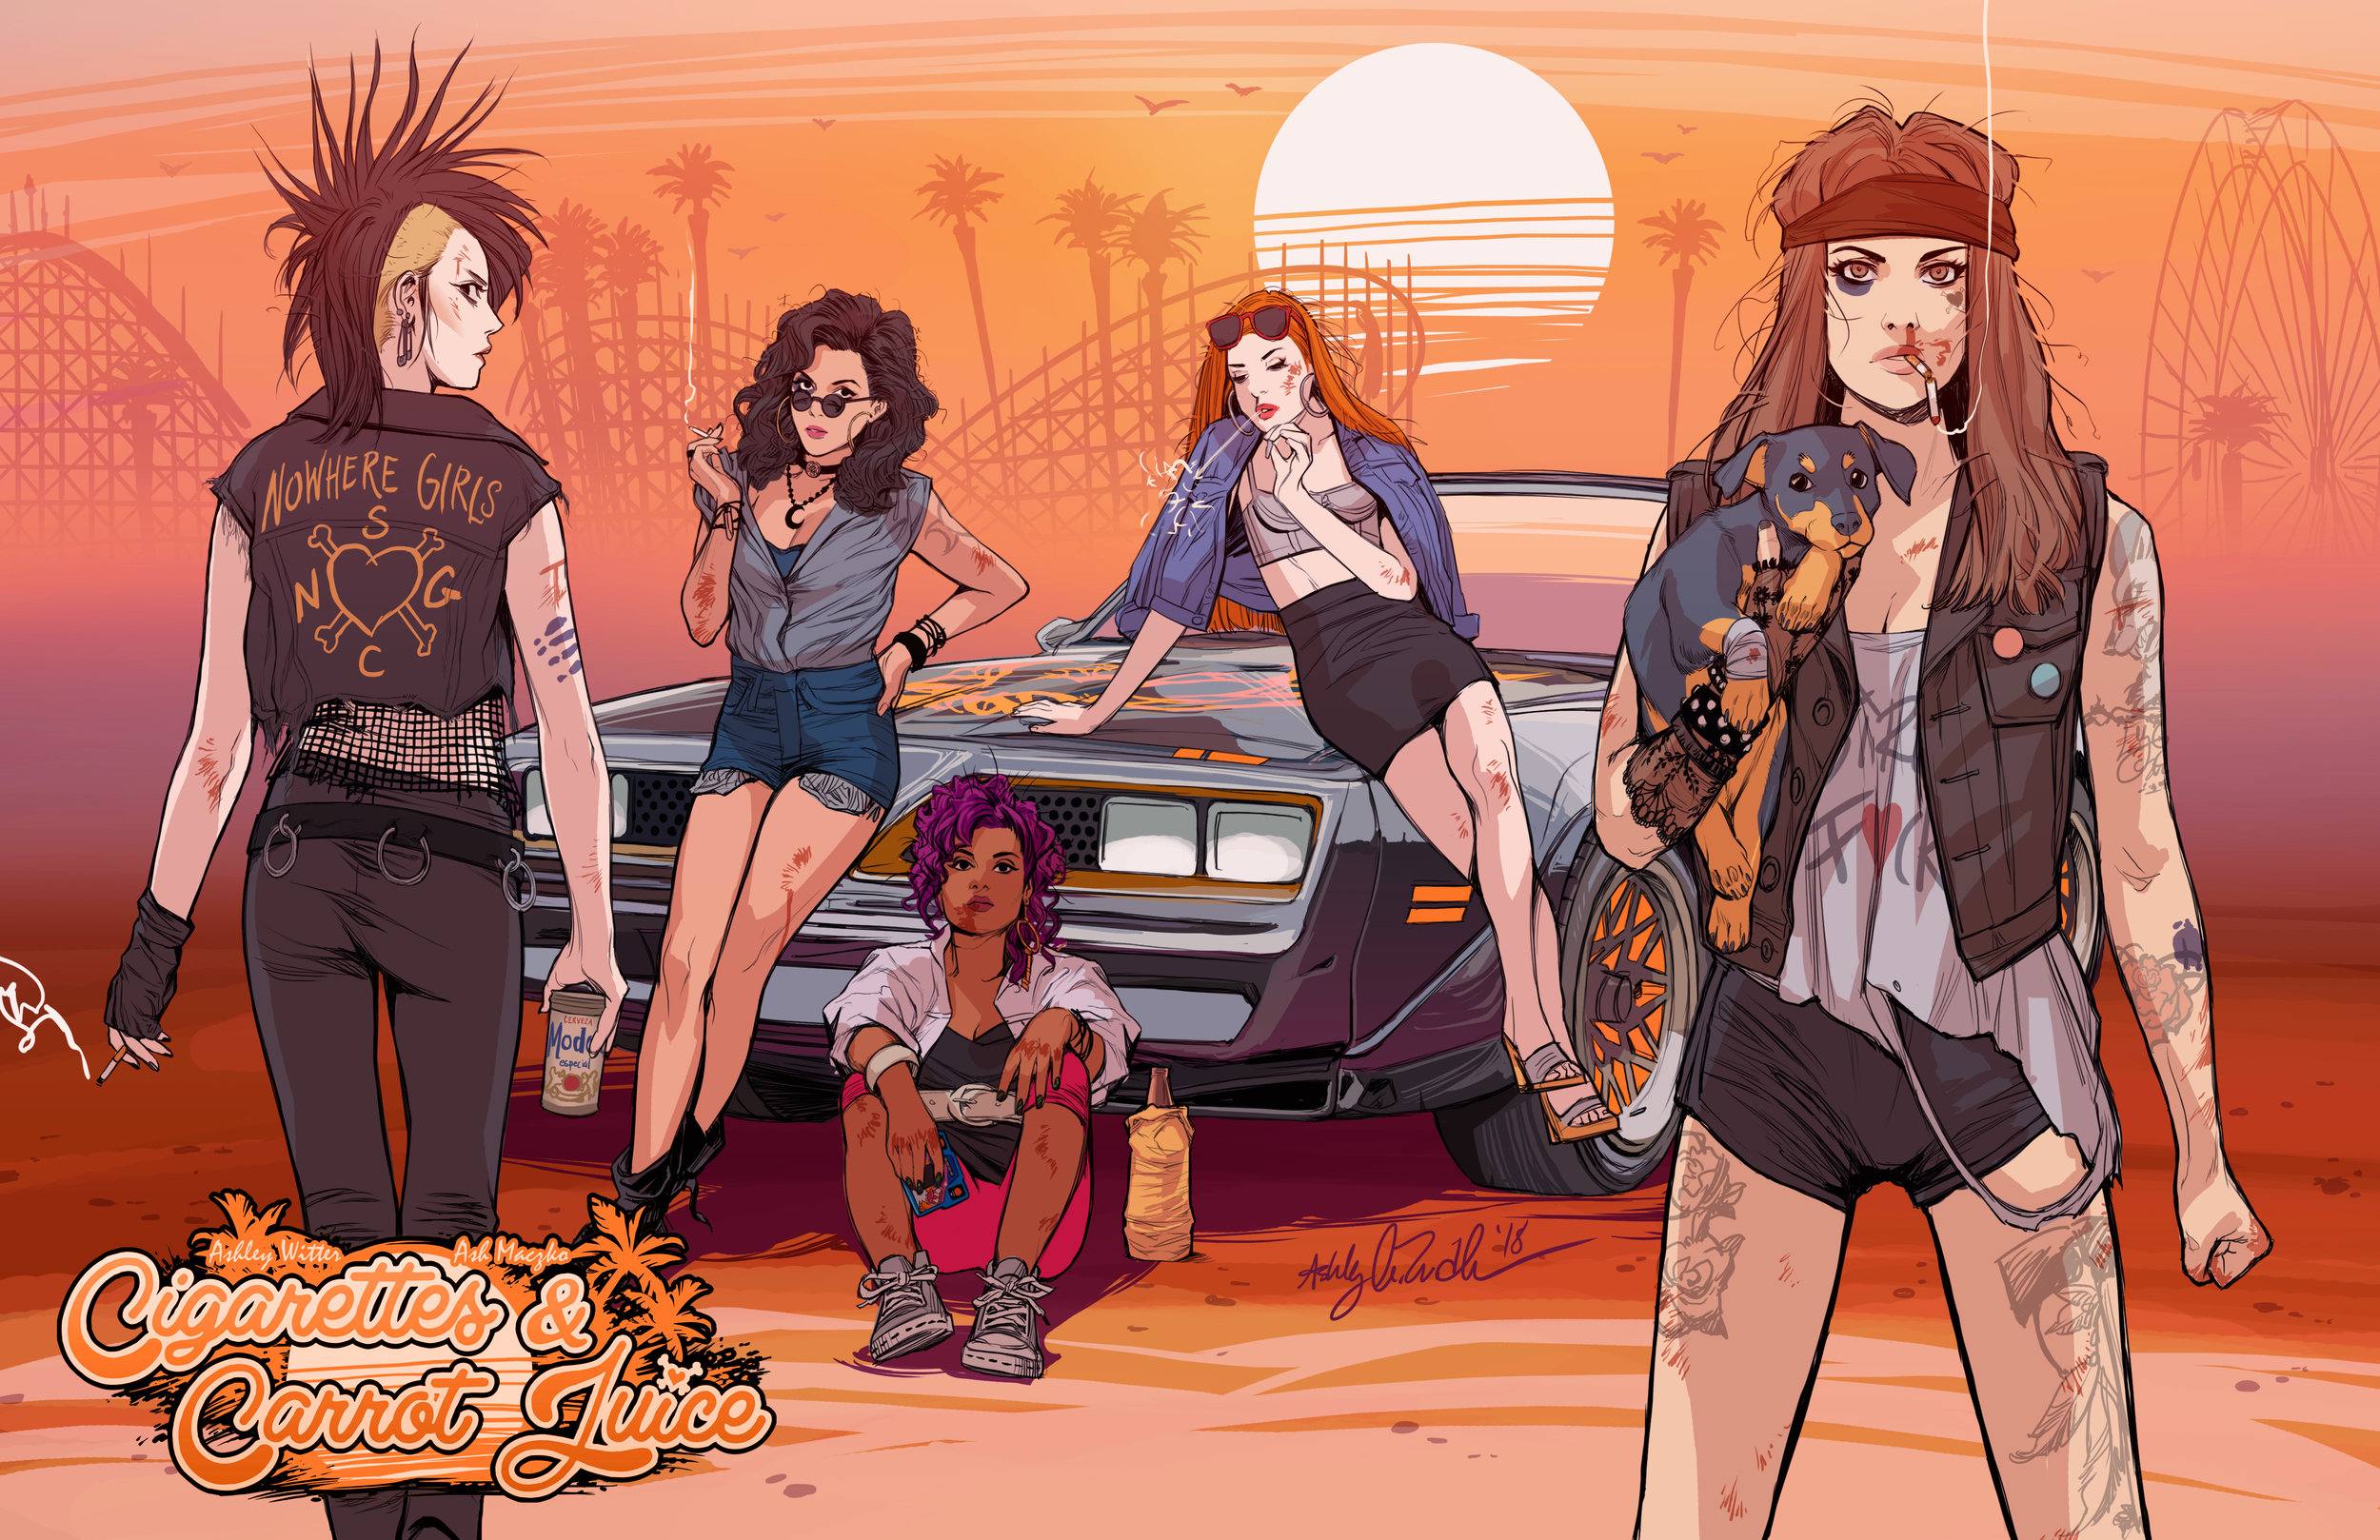 The Nowhere Girls -the stars of Cigarettes & Carrot Juice. Art by Ashley Witter.